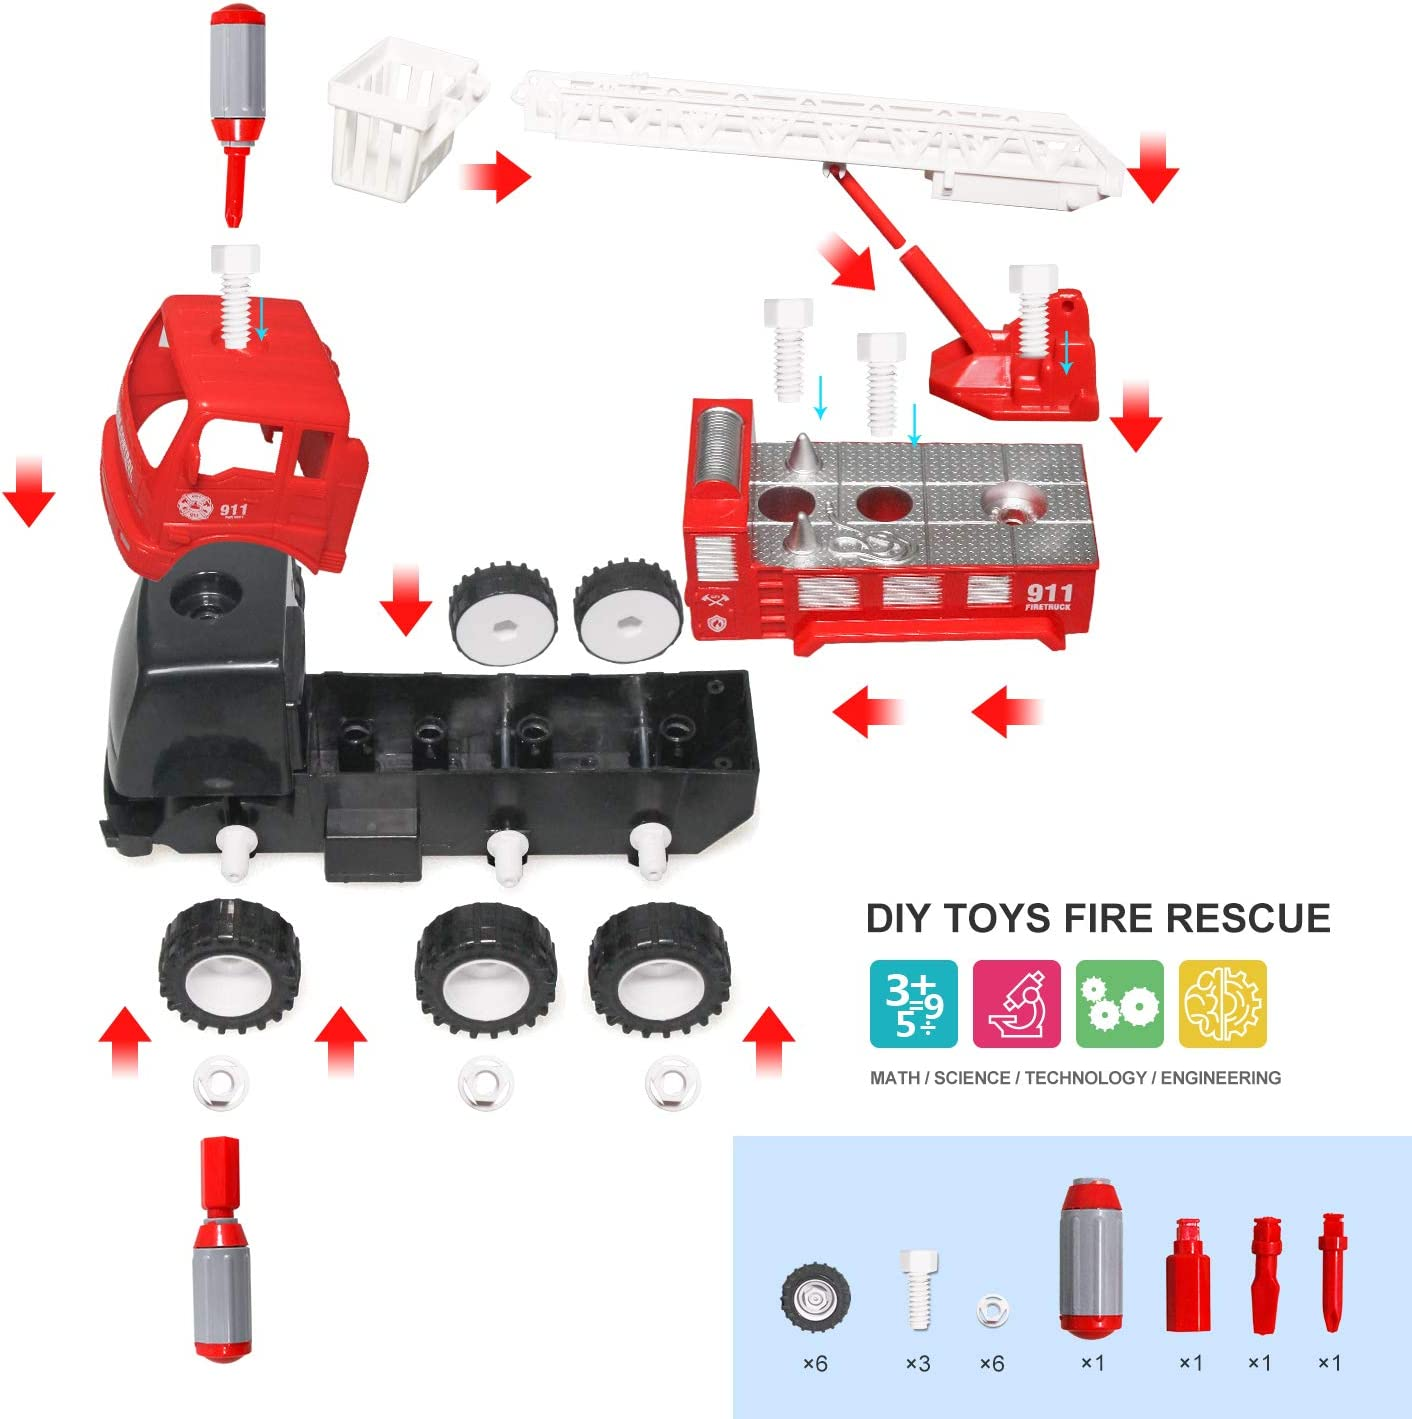 YesToys Fire Truck Toy Vehicles Friction Power,Extending Rescue Rotating Ladder Construction Toys,Sounds and Lights for Toddlers Boys,1:16 Scale Red